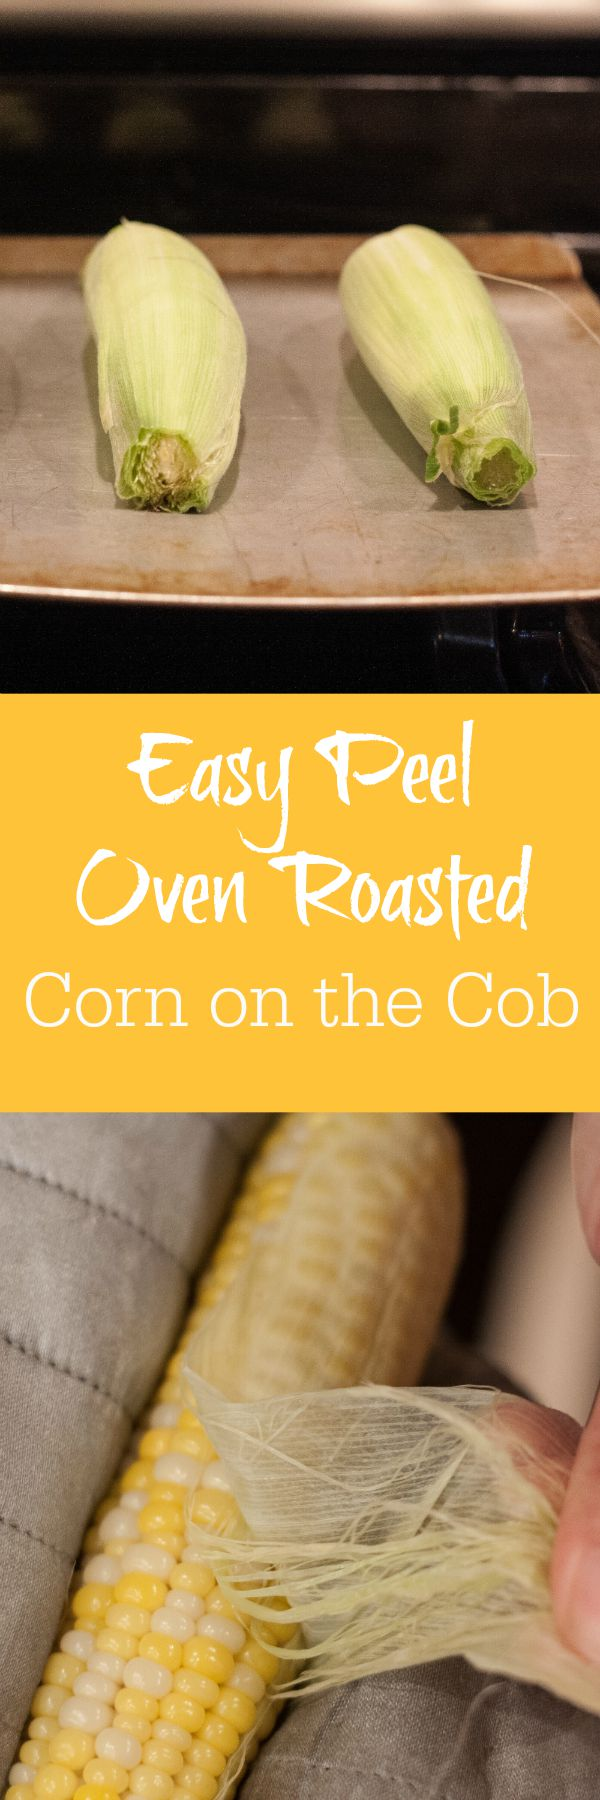 Oven Roasted Corn on the Cob: a  recipe for the easiest, no-mess, no-shuck corn. The silks melt into the husks and slip right off after baking!  Easy Recipe | Vegetable Recipes | Recipes for a Crowd